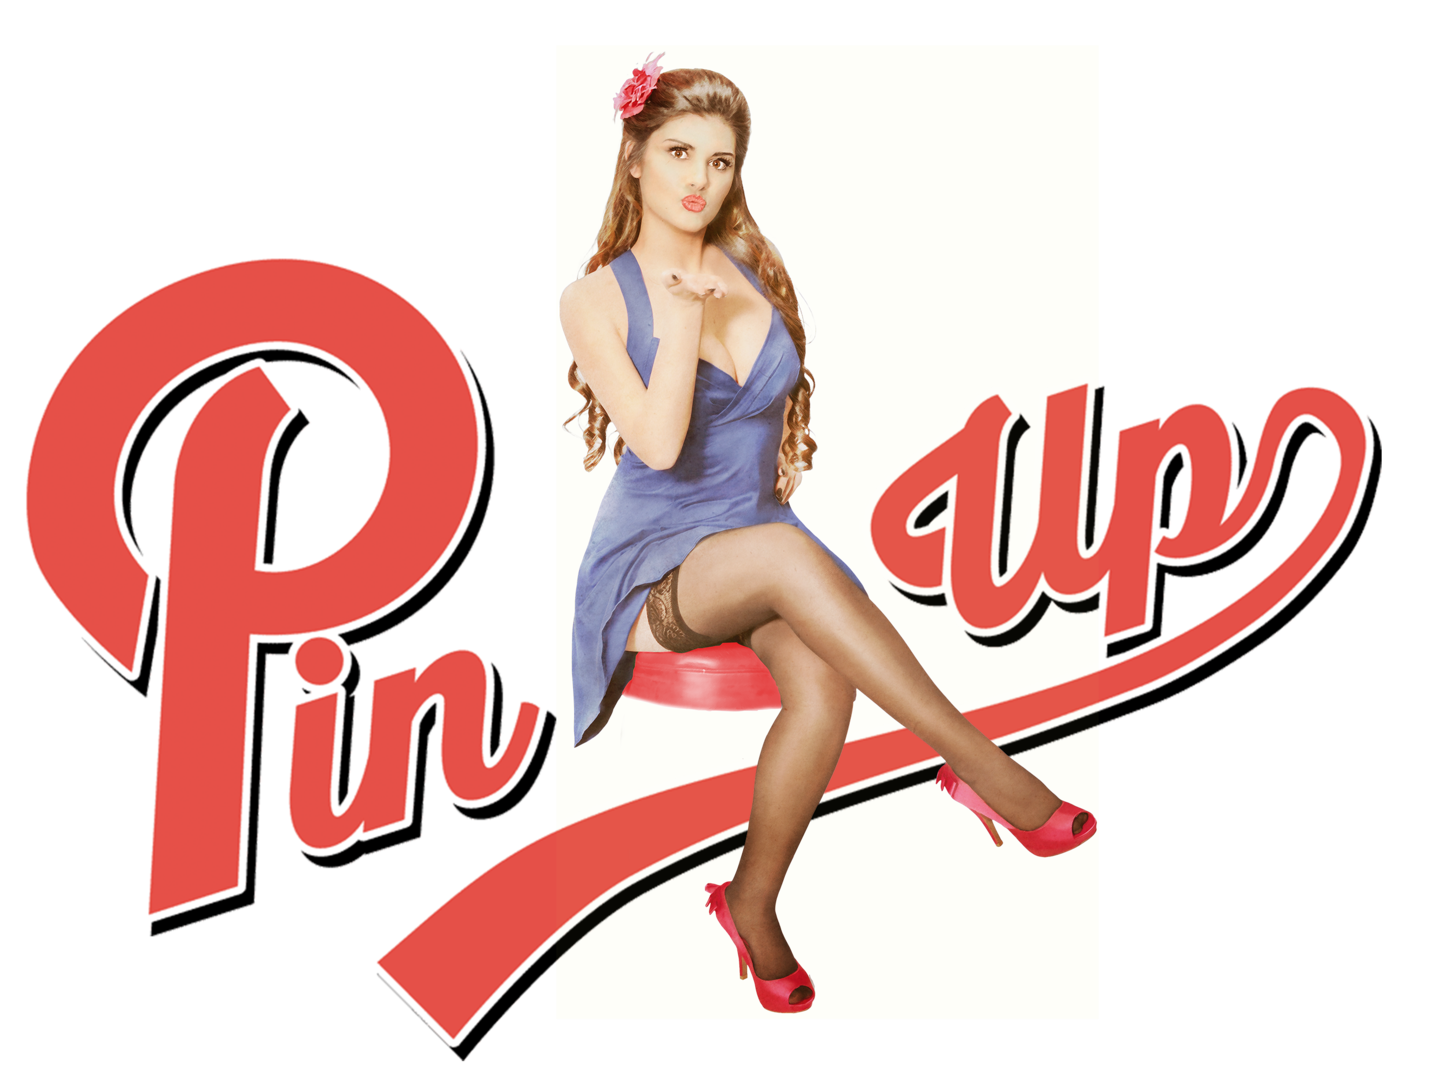 Pin-up Vintage Photography